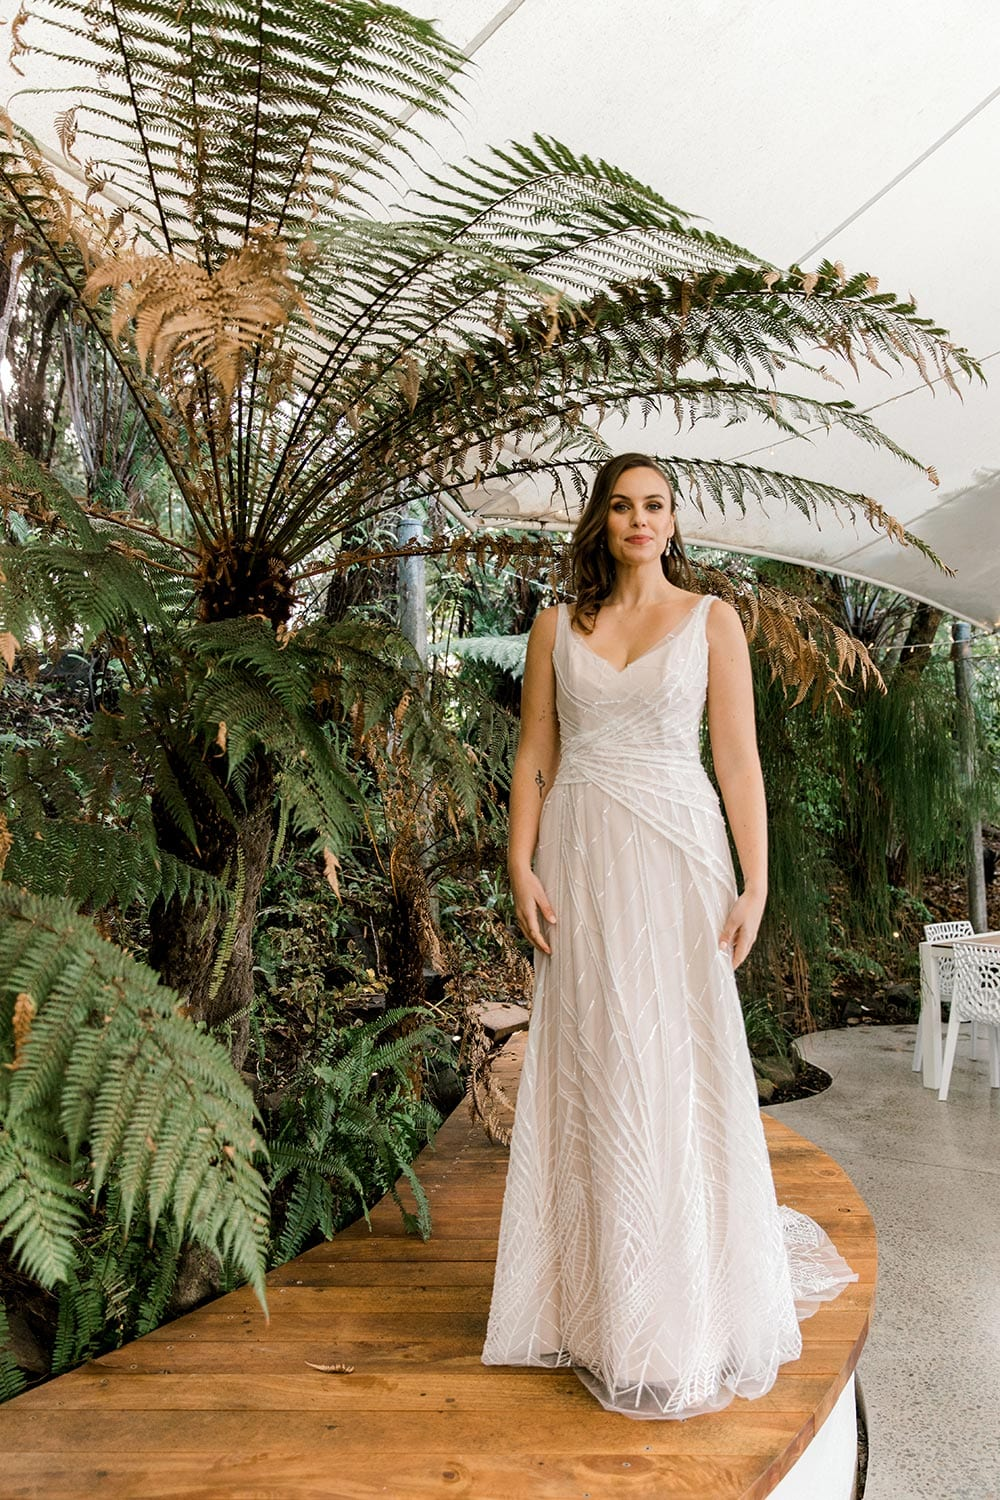 Amber Wedding Dress from Vinka Design. Beautiful wedding dress with V-neckline bodice & V-shaped back on a soft blush/light nude base. Rich beading sculpts the waist & relaxed-fit skirt falls to a train. Full length of dress front. Photographed at Tui Hills by Emmaline Photography.